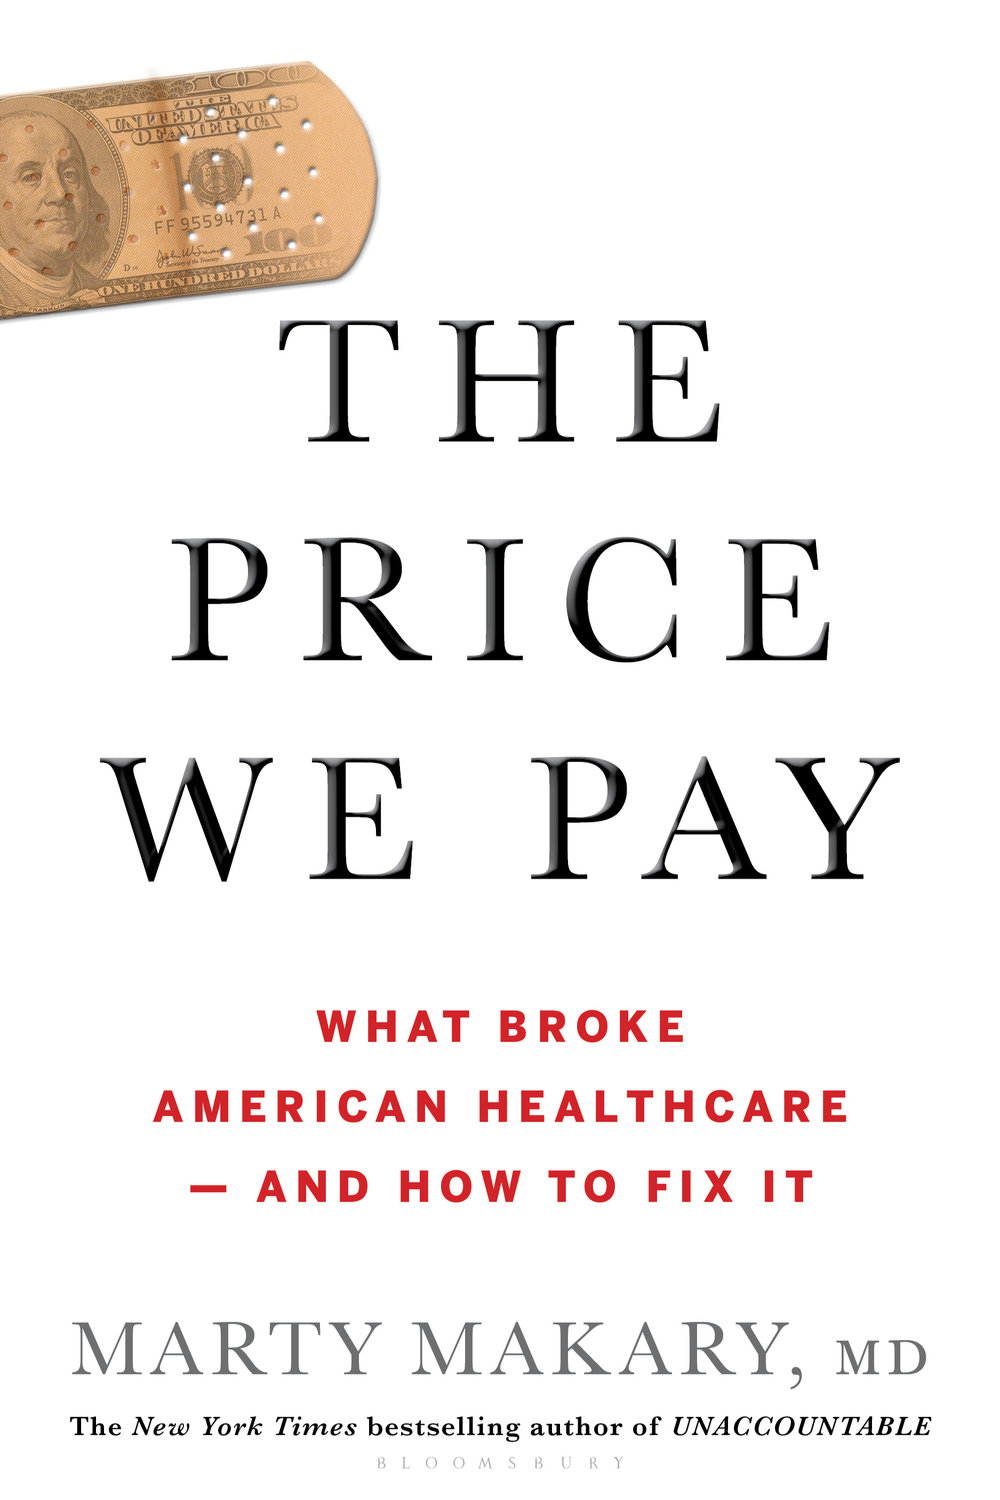 The+Price+We+Pay-sk+%281%29.jpg